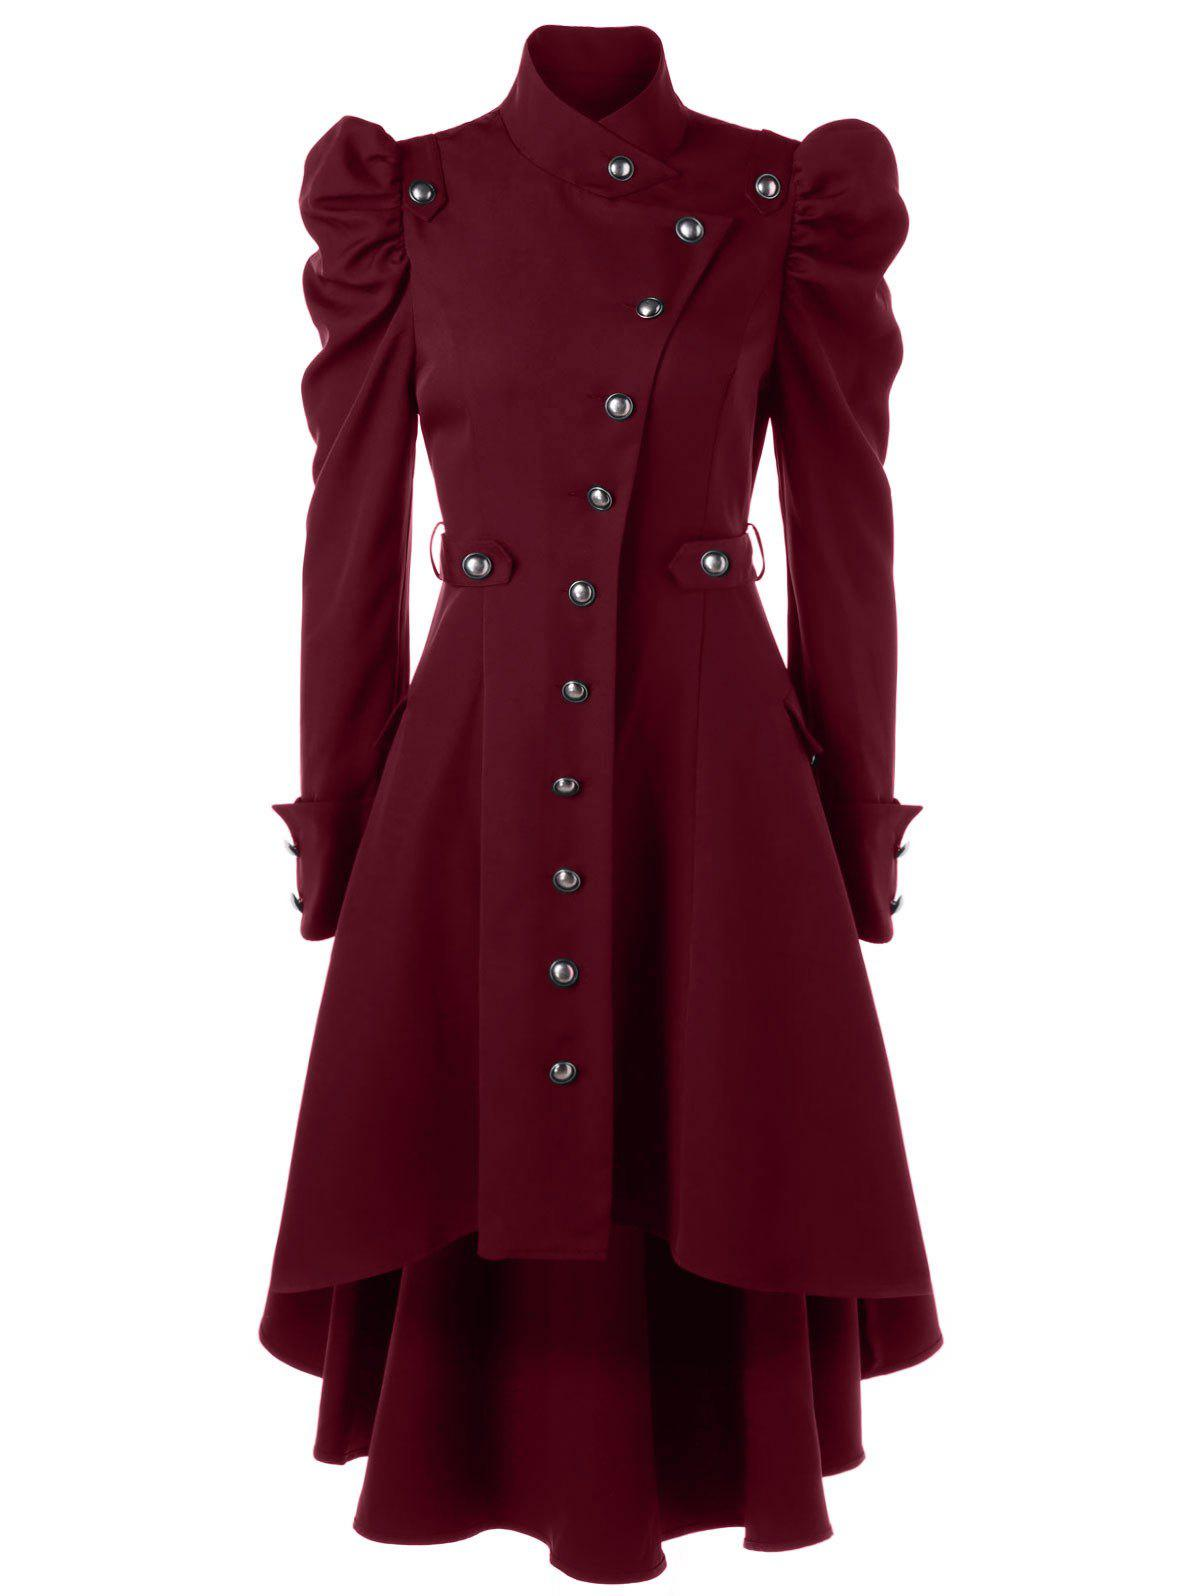 Puff Shoulder Single Breasted Dip Hem Trench CoatWOMEN<br><br>Size: XL; Color: BORDEAUX; Clothes Type: Trench; Material: Polyester; Type: High Waist; Shirt Length: Long; Sleeve Length: Full; Collar: Stand-Up Collar; Pattern Type: Solid; Style: Vintage; Season: Fall,Spring; Weight: 0.7000kg; Package Contents: 1 x Trench Coat;